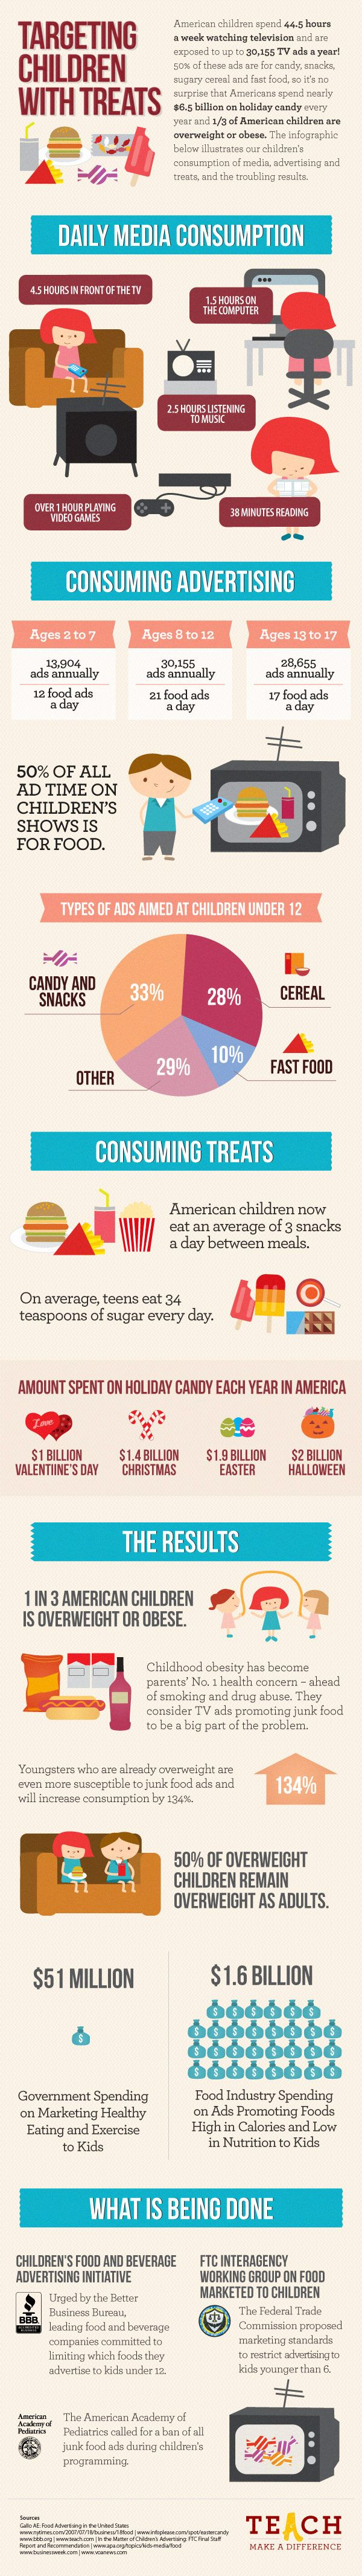 Targeting Children with Treats (600 pixels) Internet Site, Target Children,  Website, Web Site, Healthy Eating, Junk Food, Infographic, Childhood Obesity, Childhood Obed